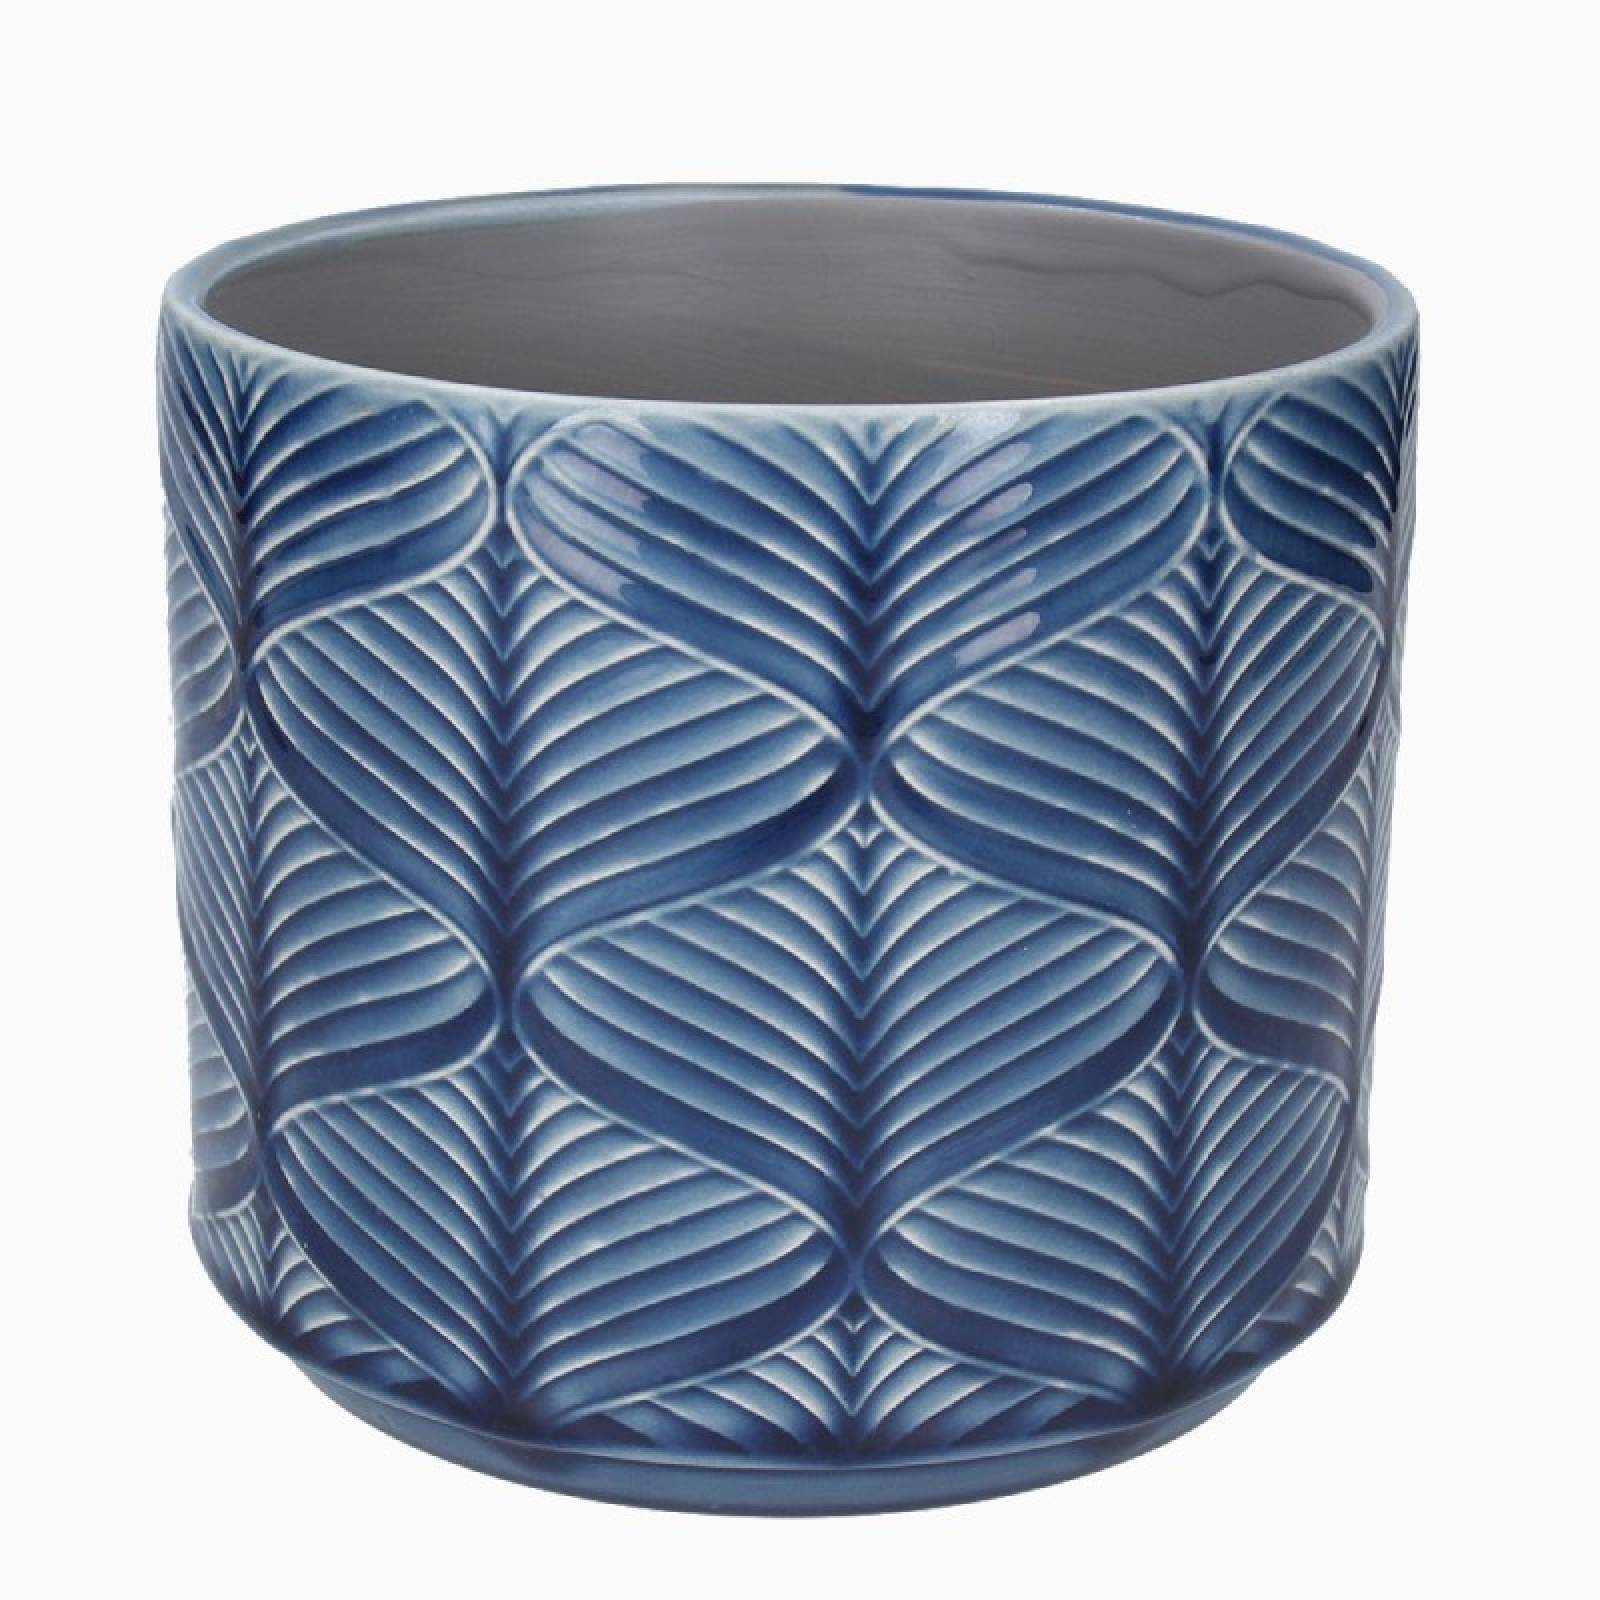 Medium Wavy Ceramic Flower Pot Cover In Navy